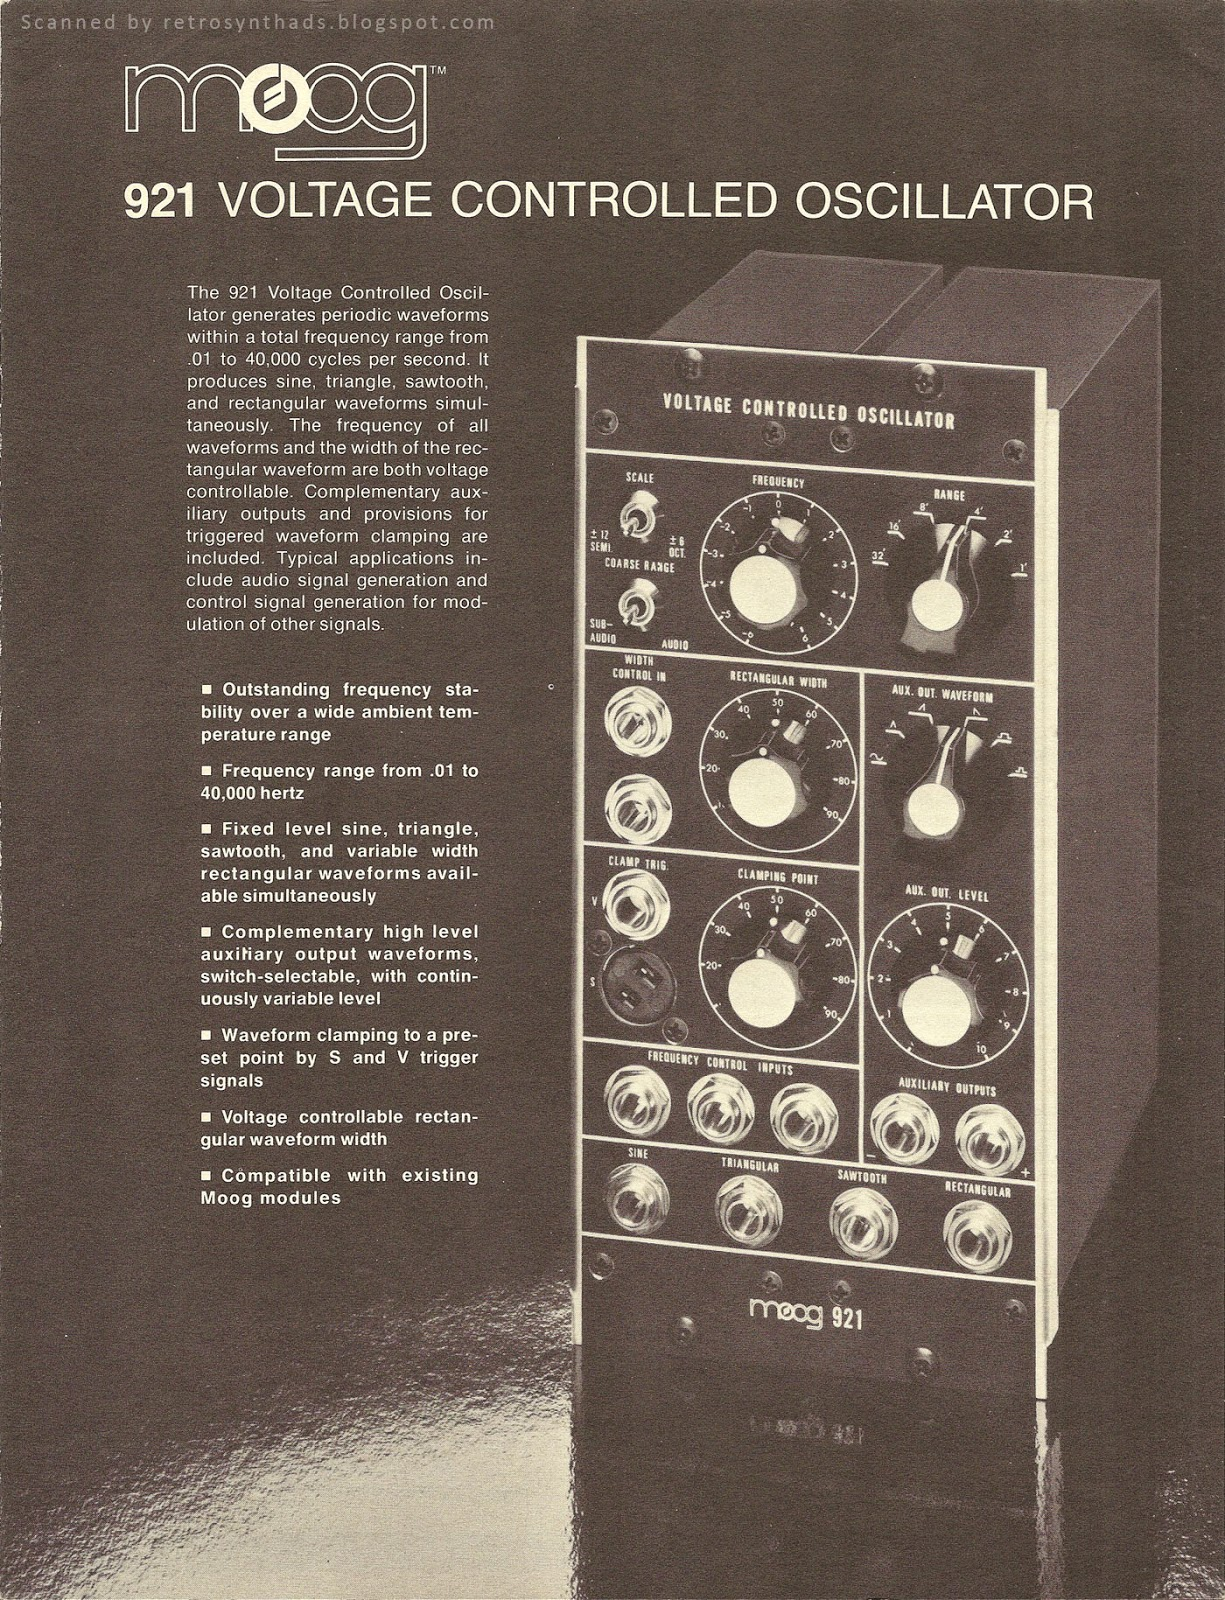 http://retrosynthads.blogspot.ca/2014/09/moog-921-voltage-controlled-oscillator.html